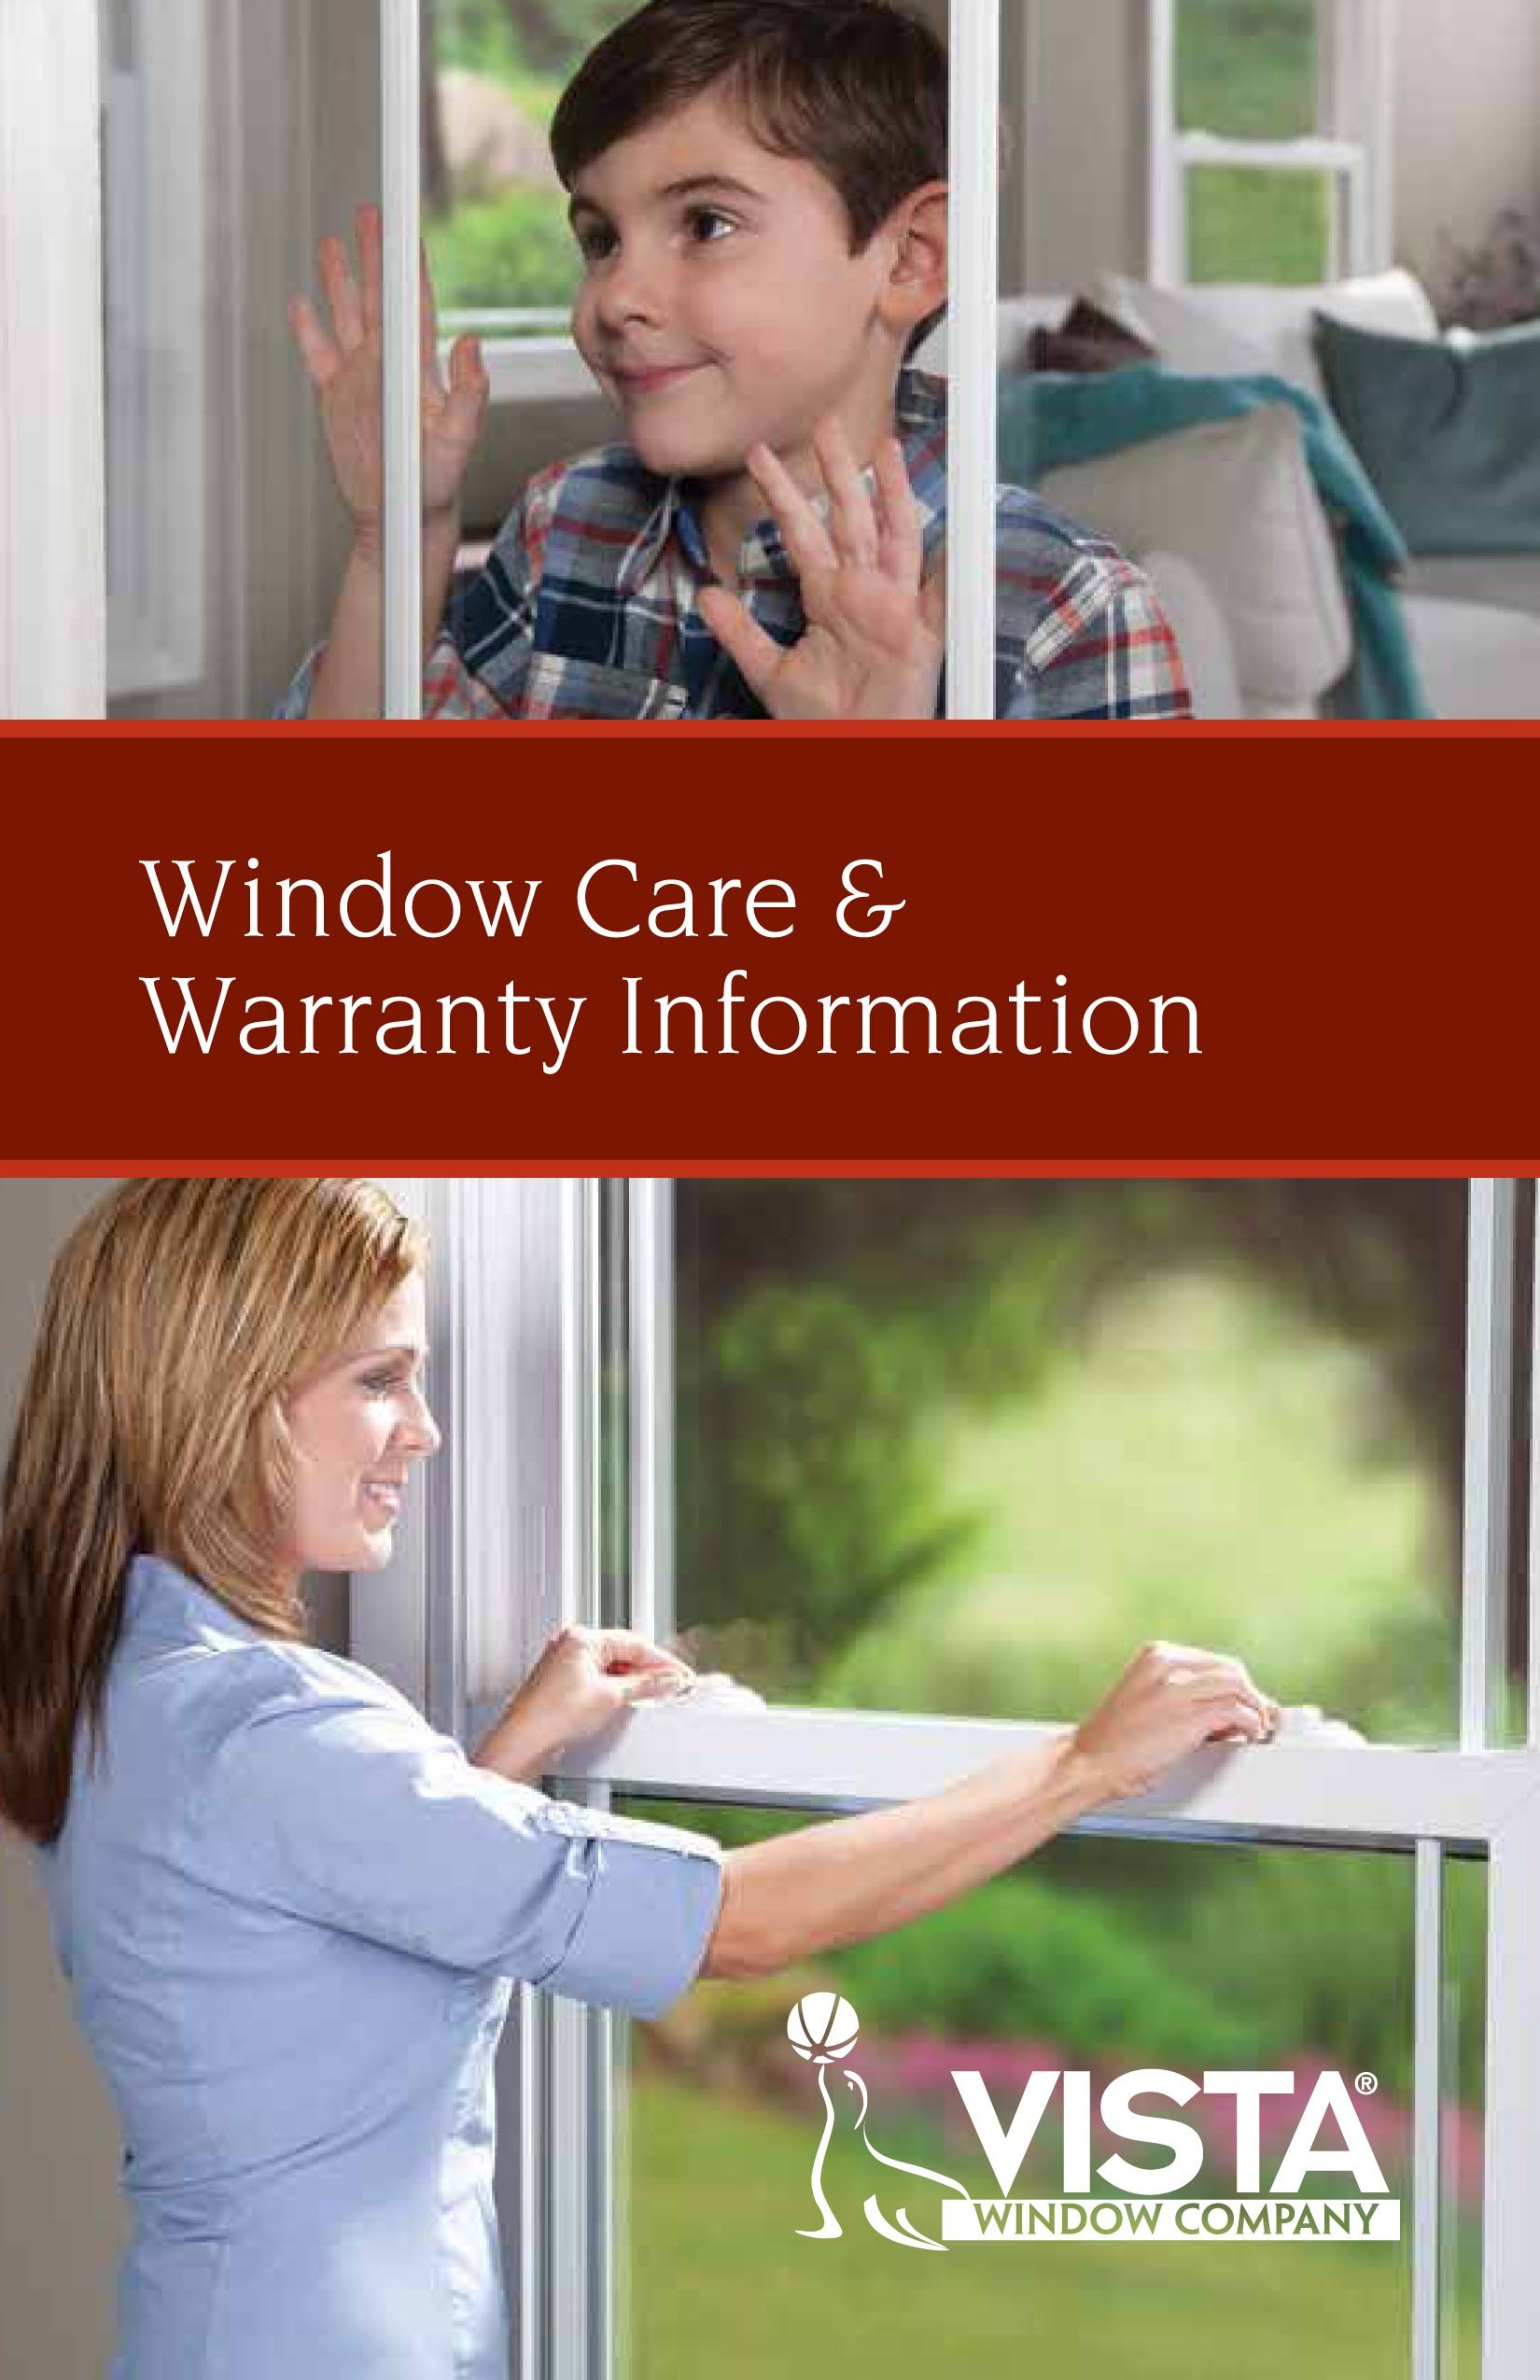 Vista Window Care & Warranty Information